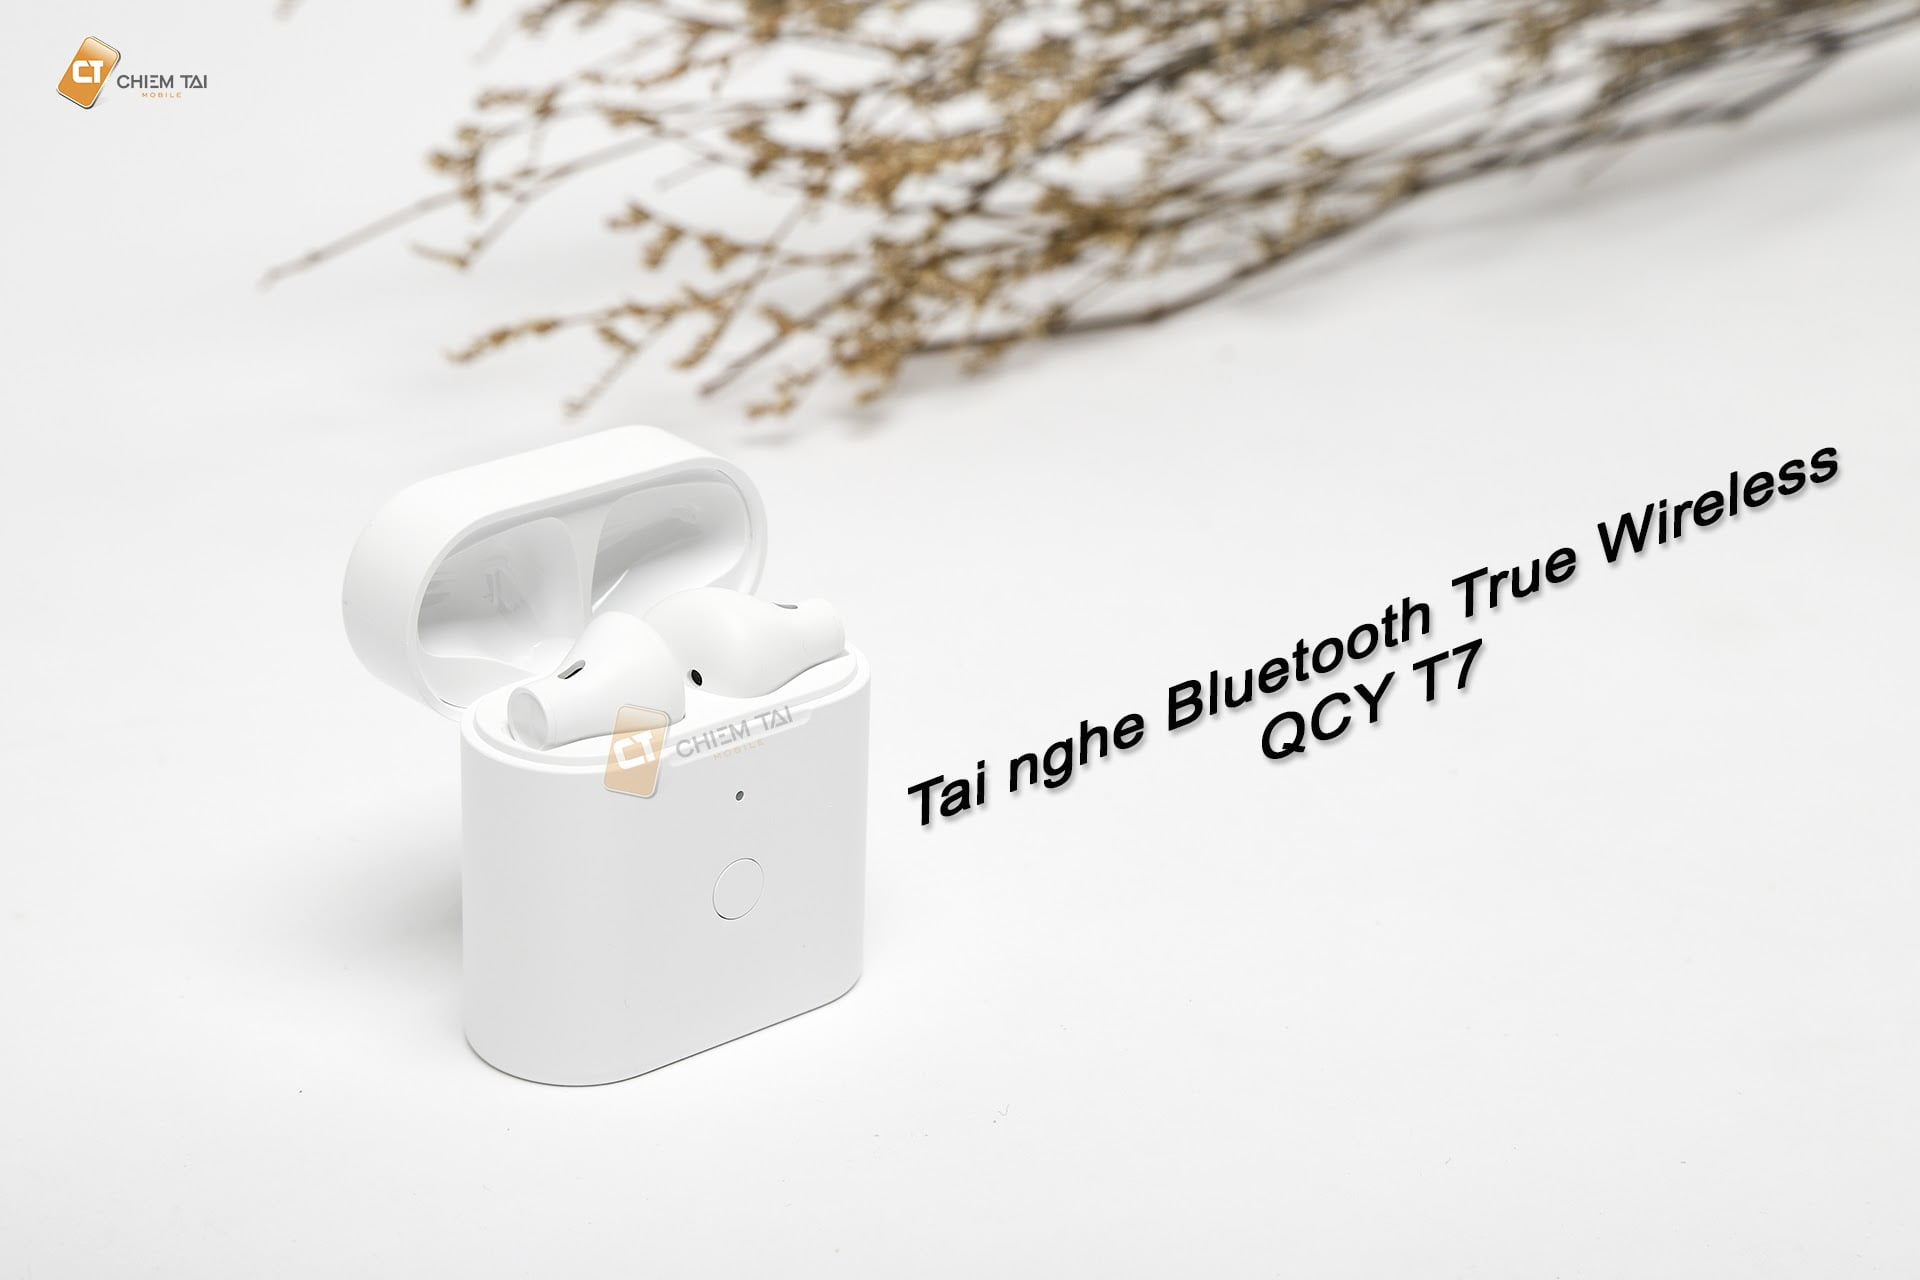 tai nghe bluetooth true wireless qcy t7 6050646d4e451